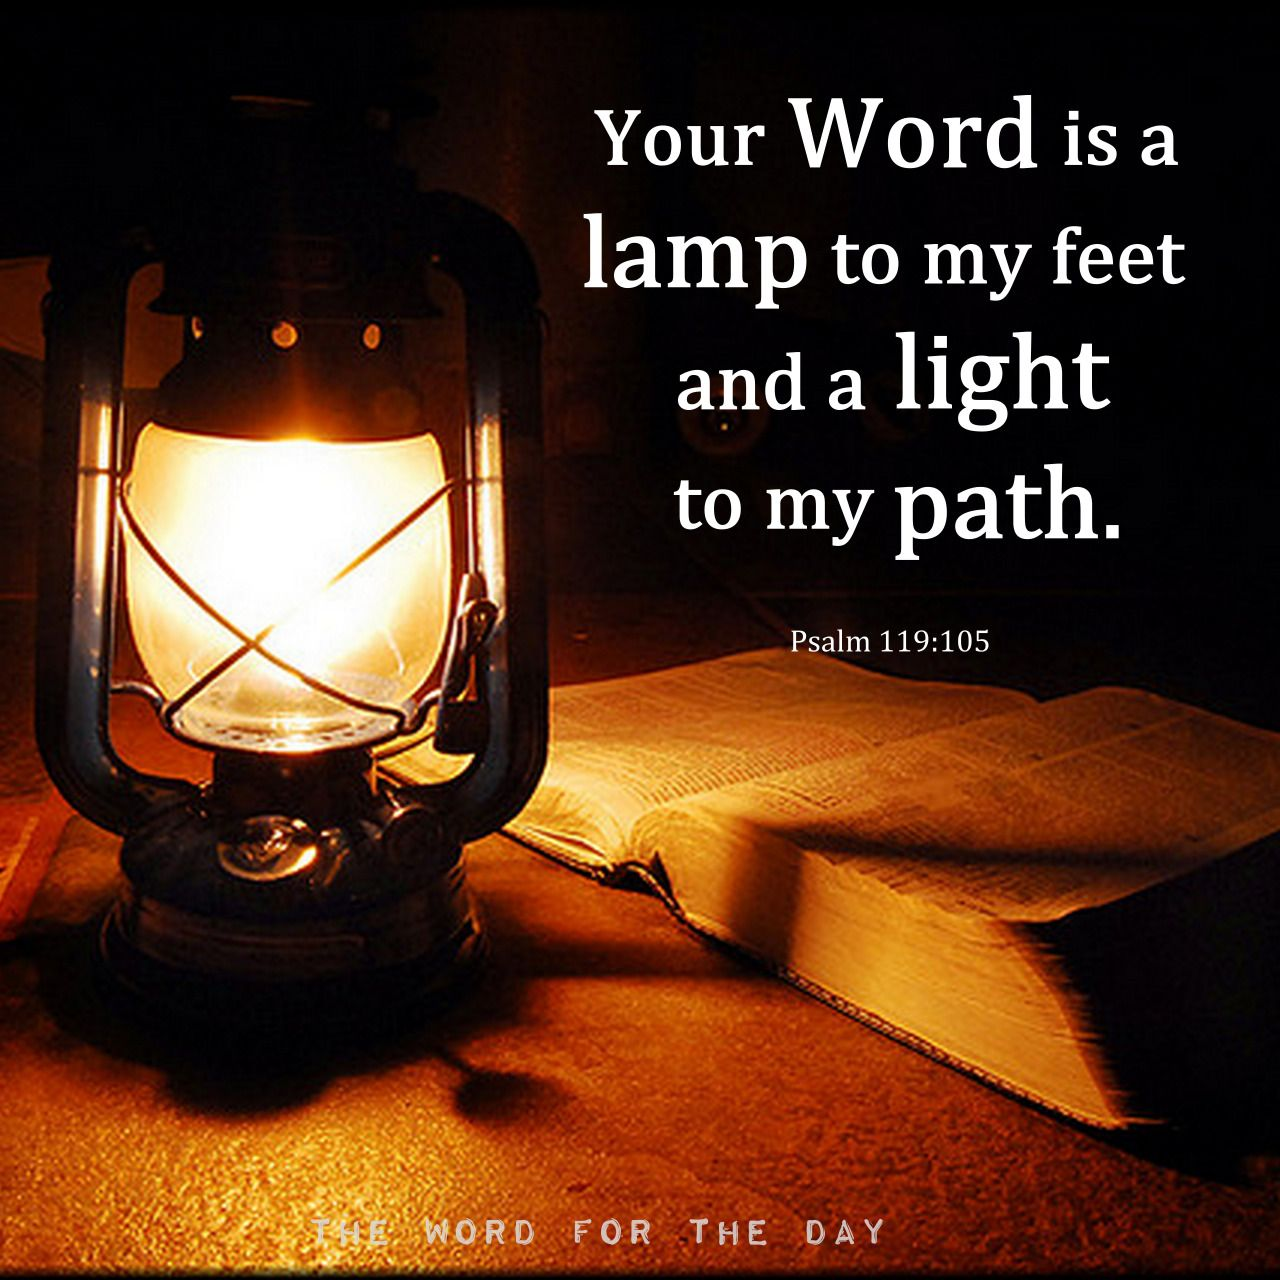 Thewordfortheday Psalm 119 105 Likens The Word Of God To A Lamp Unto My Feet And A Light Unto My Path The Bibl Psalms Encouraging Scripture Word Of God